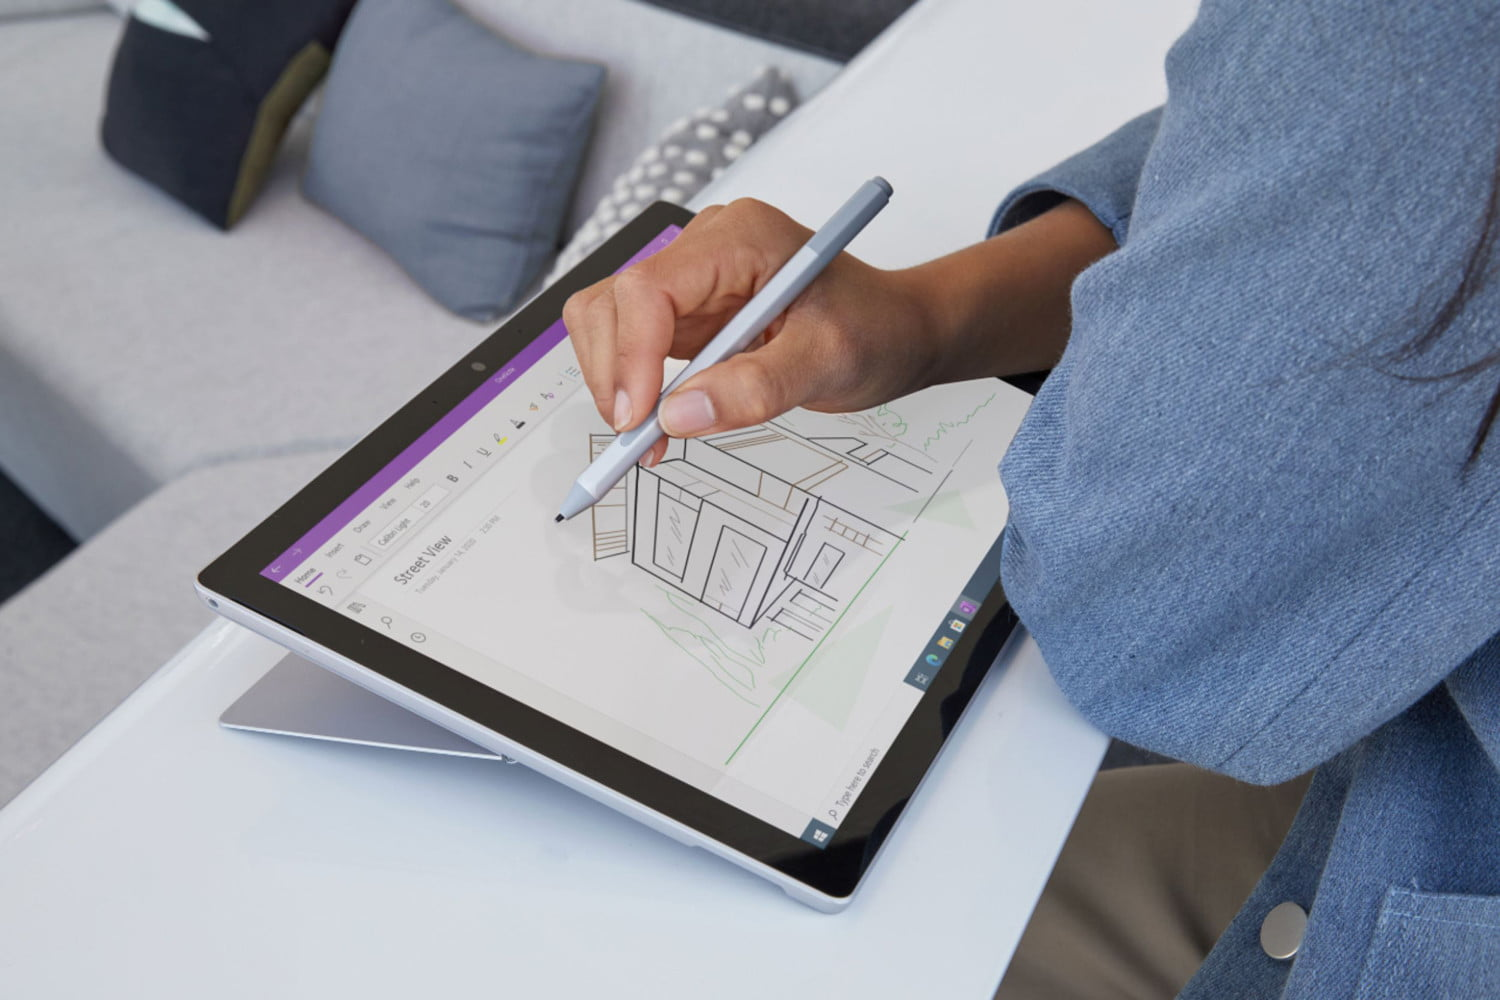 Microsoft Surface Pro 7 in drawing mode.